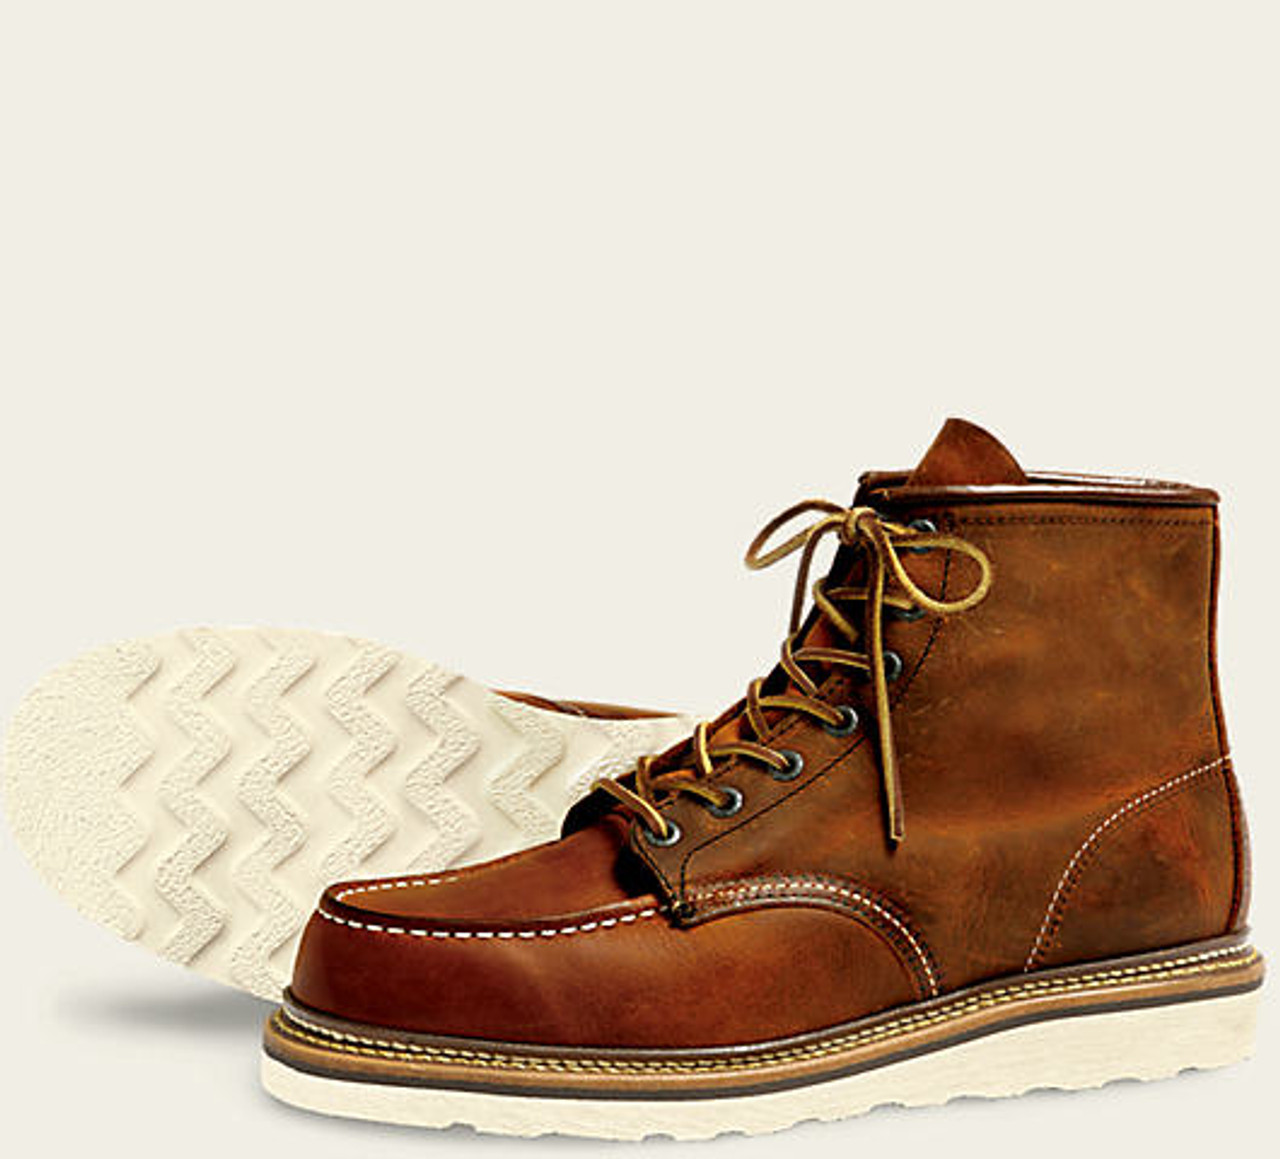 Red Wing Heritage 1907 Moc Toe Boot